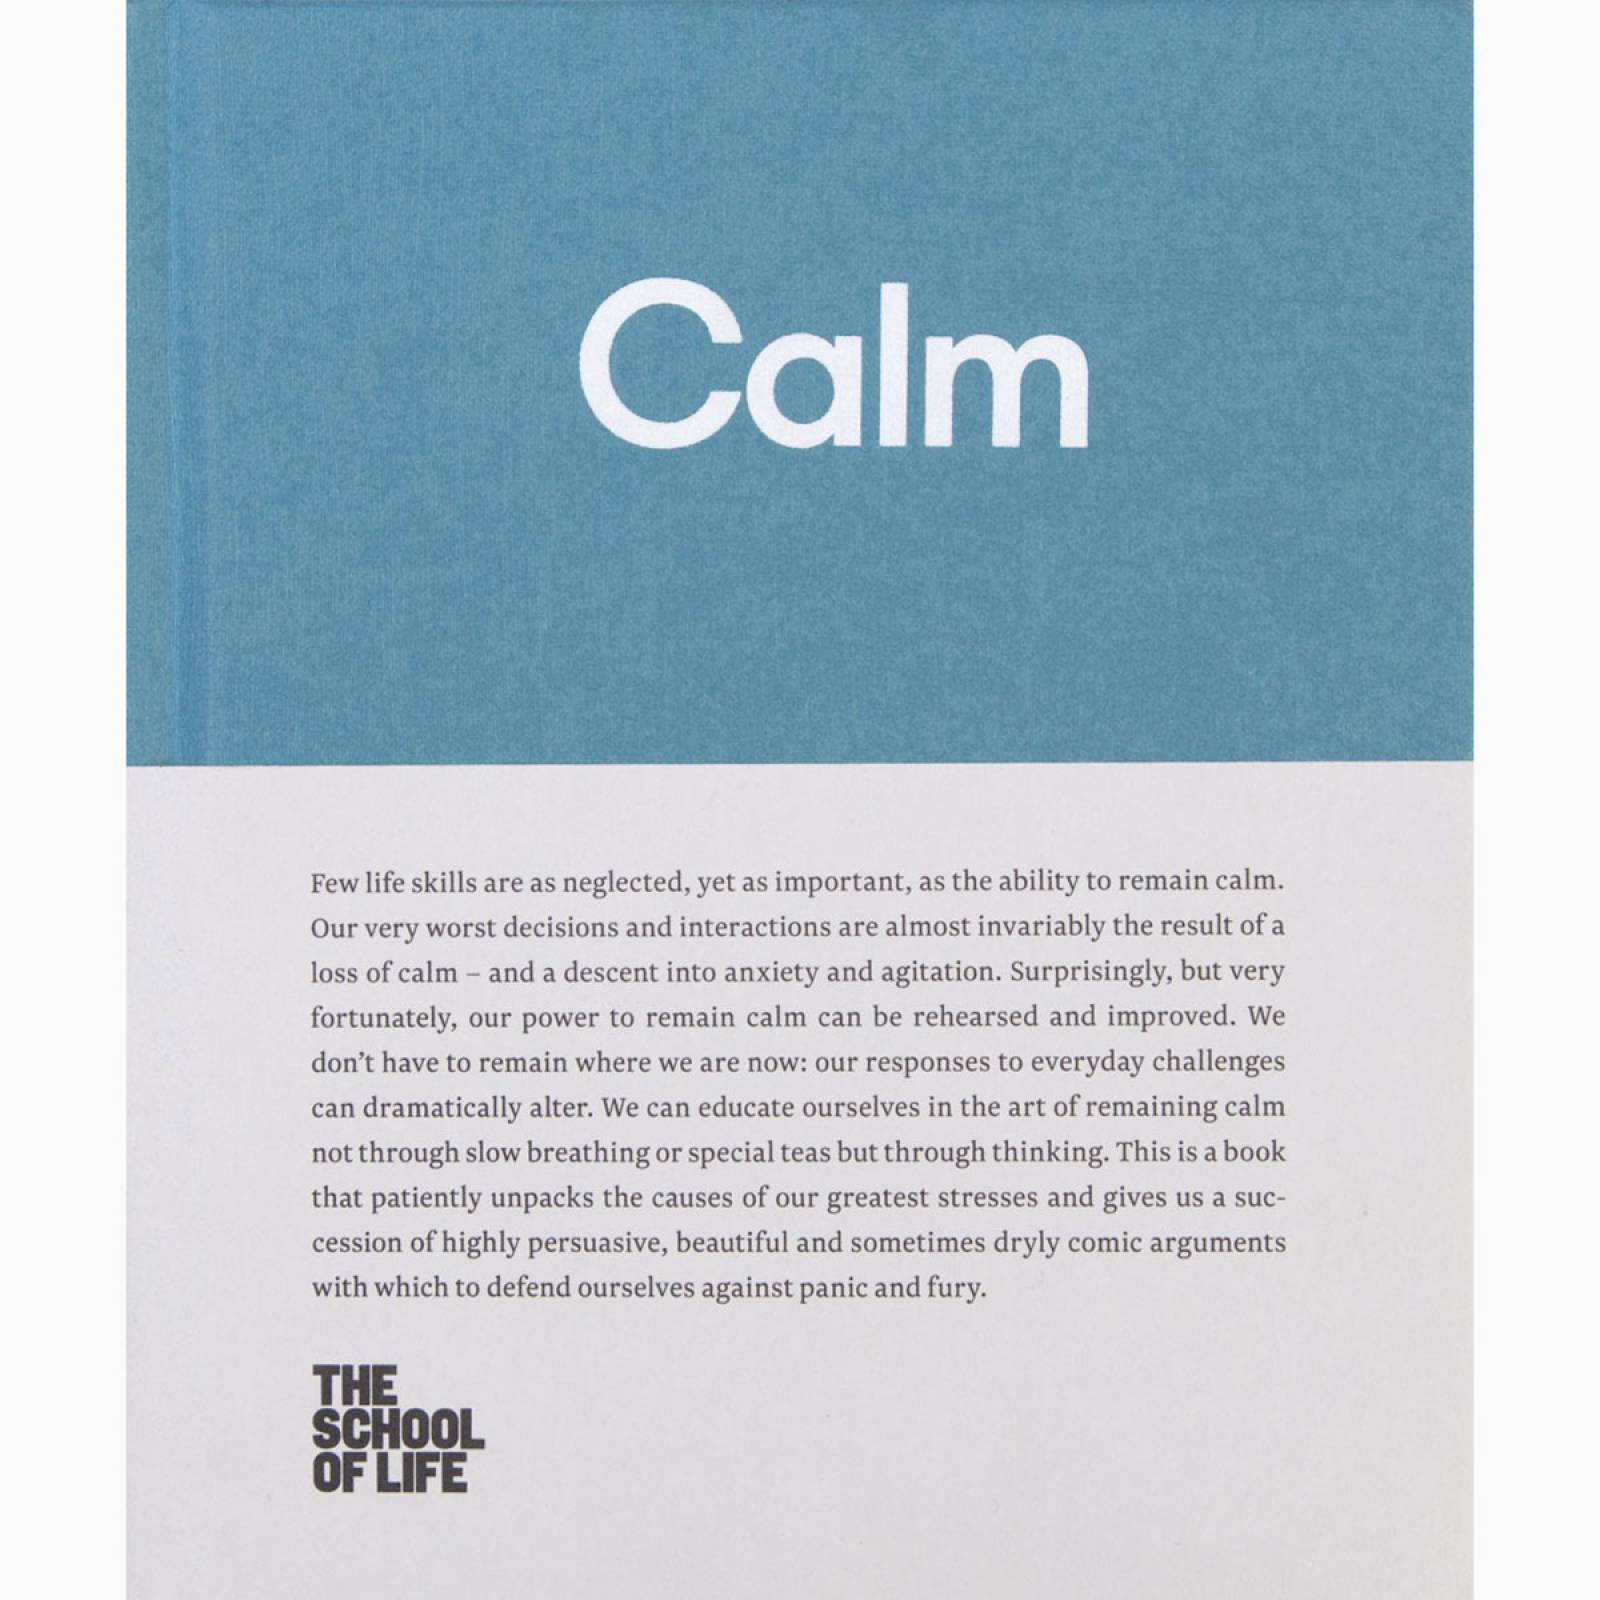 Calm - The School Of Life - Hardback Book thumbnails